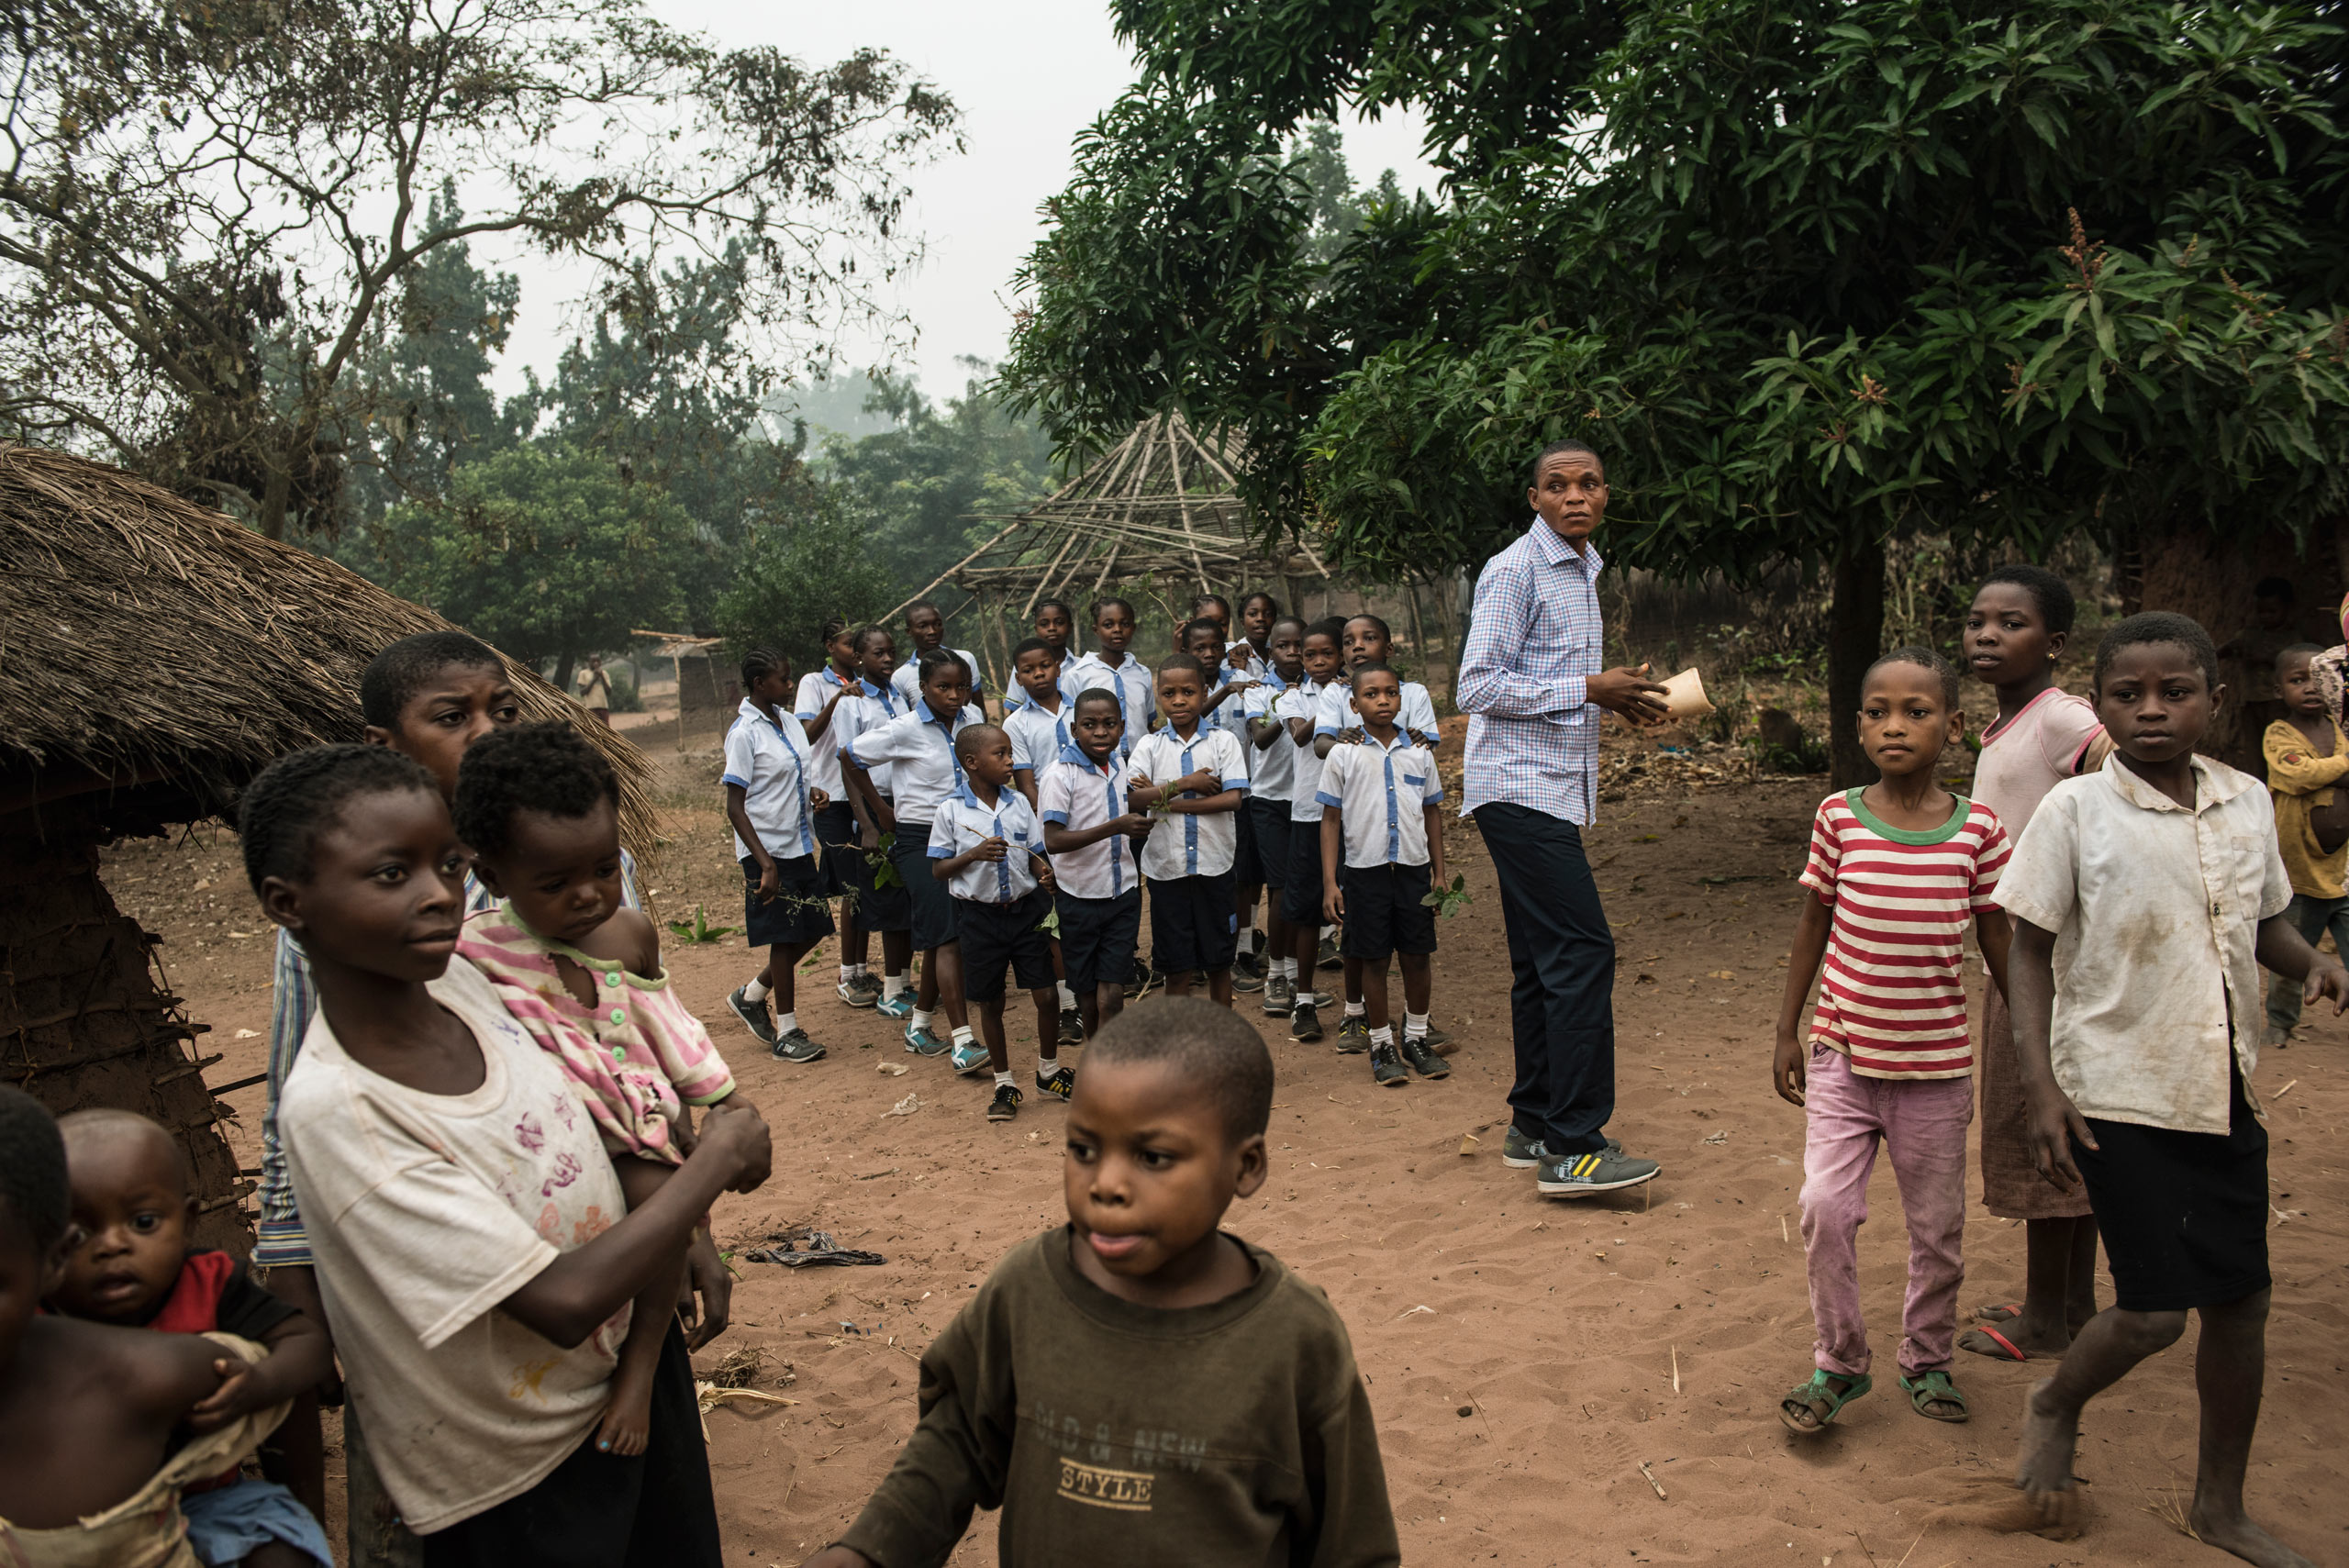 Congolese children attend the Brilliant Mobile School in the village of Lungudi,  Kasaï. The school's program uses funds from the diamond industry to educate miners' children. Aug. 7, 2015.